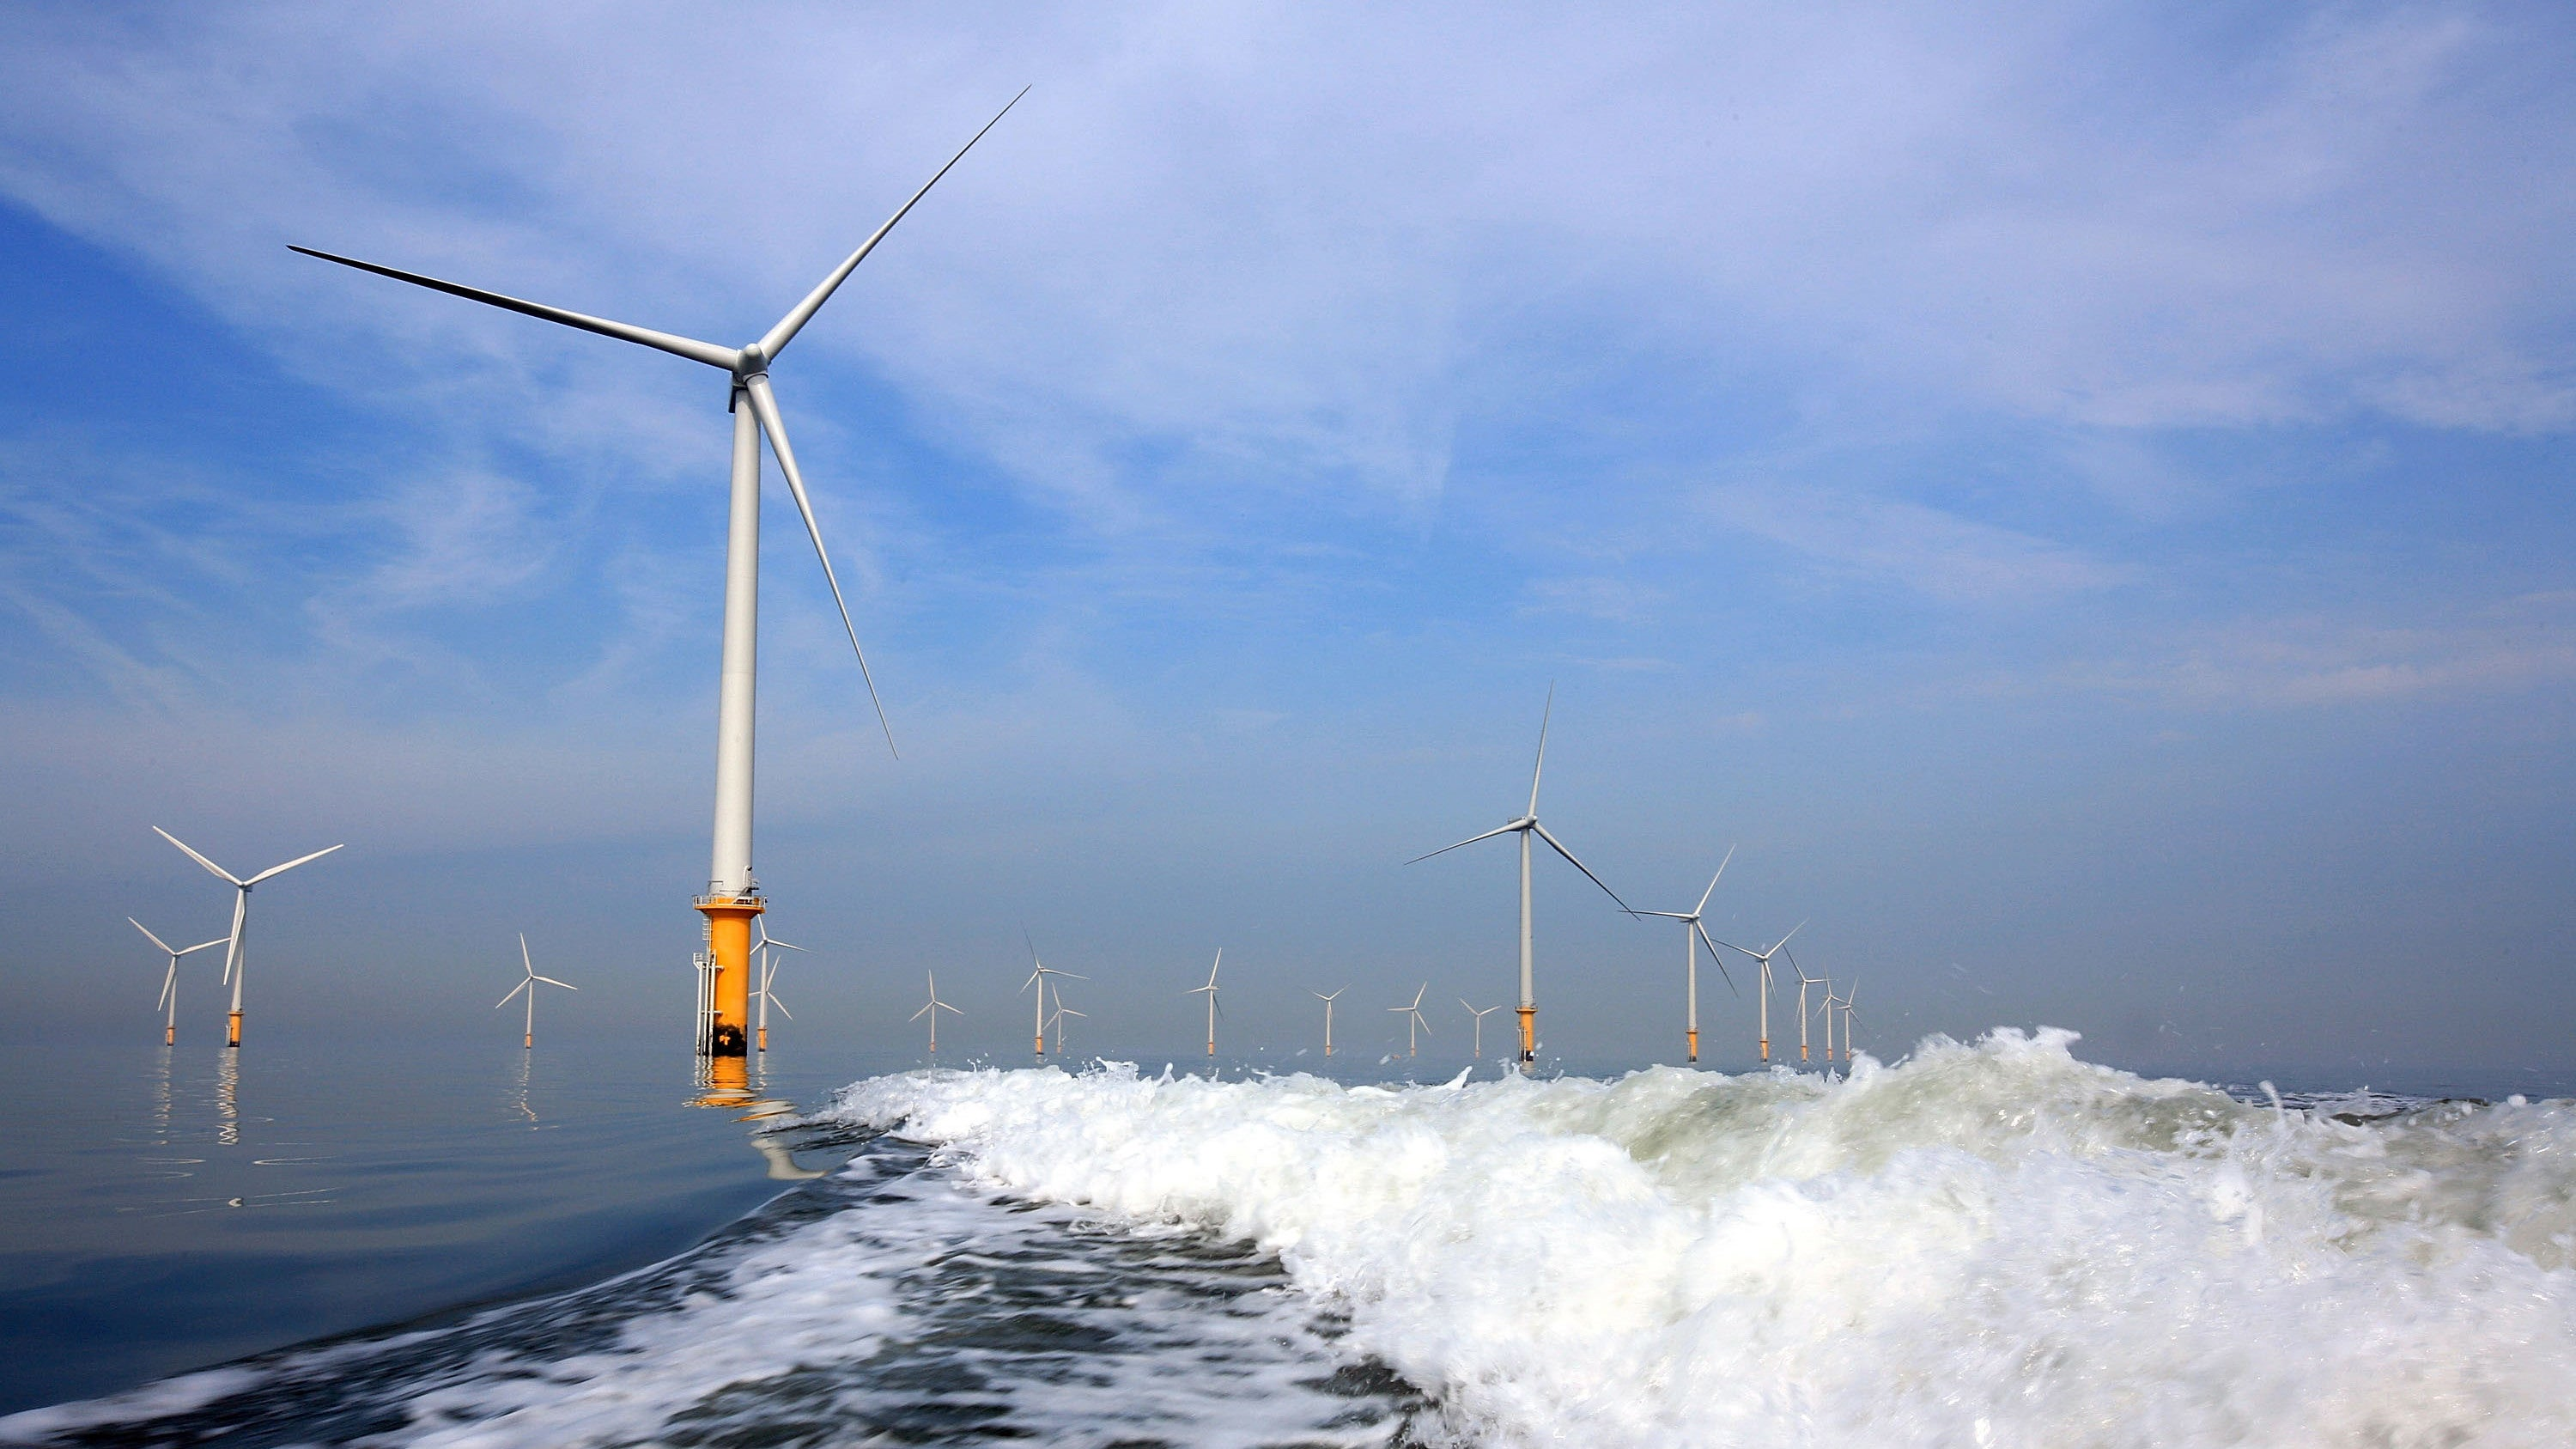 The World's Largest Offshore Wind Farm Just Came Online